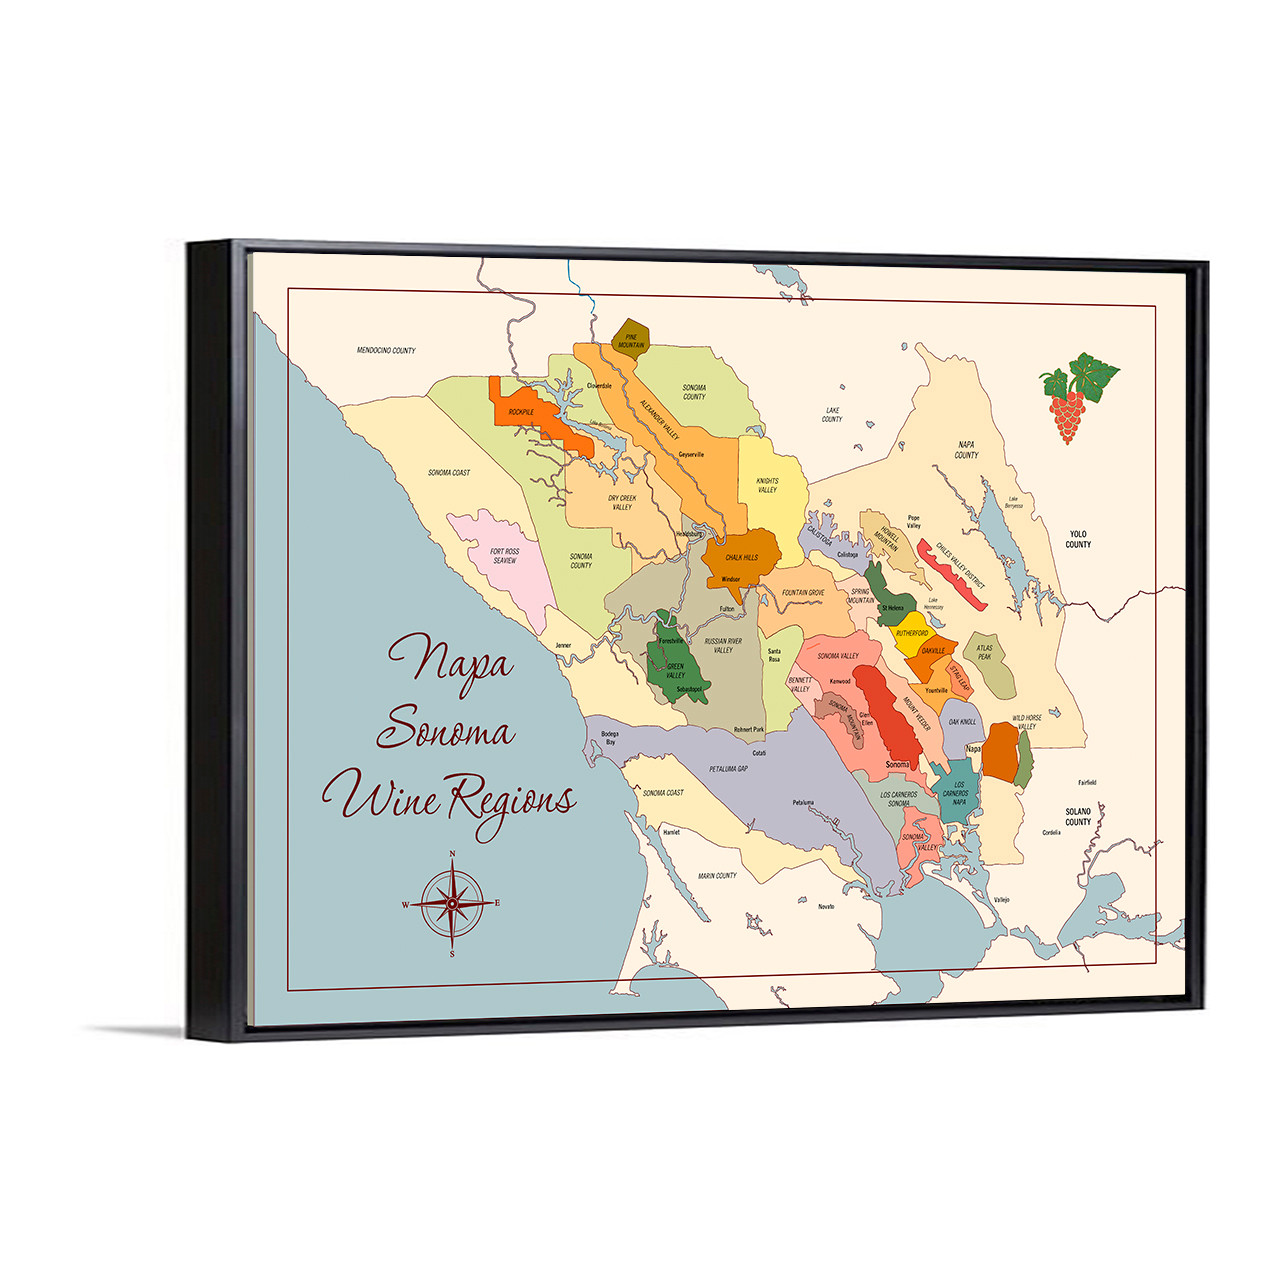 Napa Sonoma Wine Regions canvas with float frame